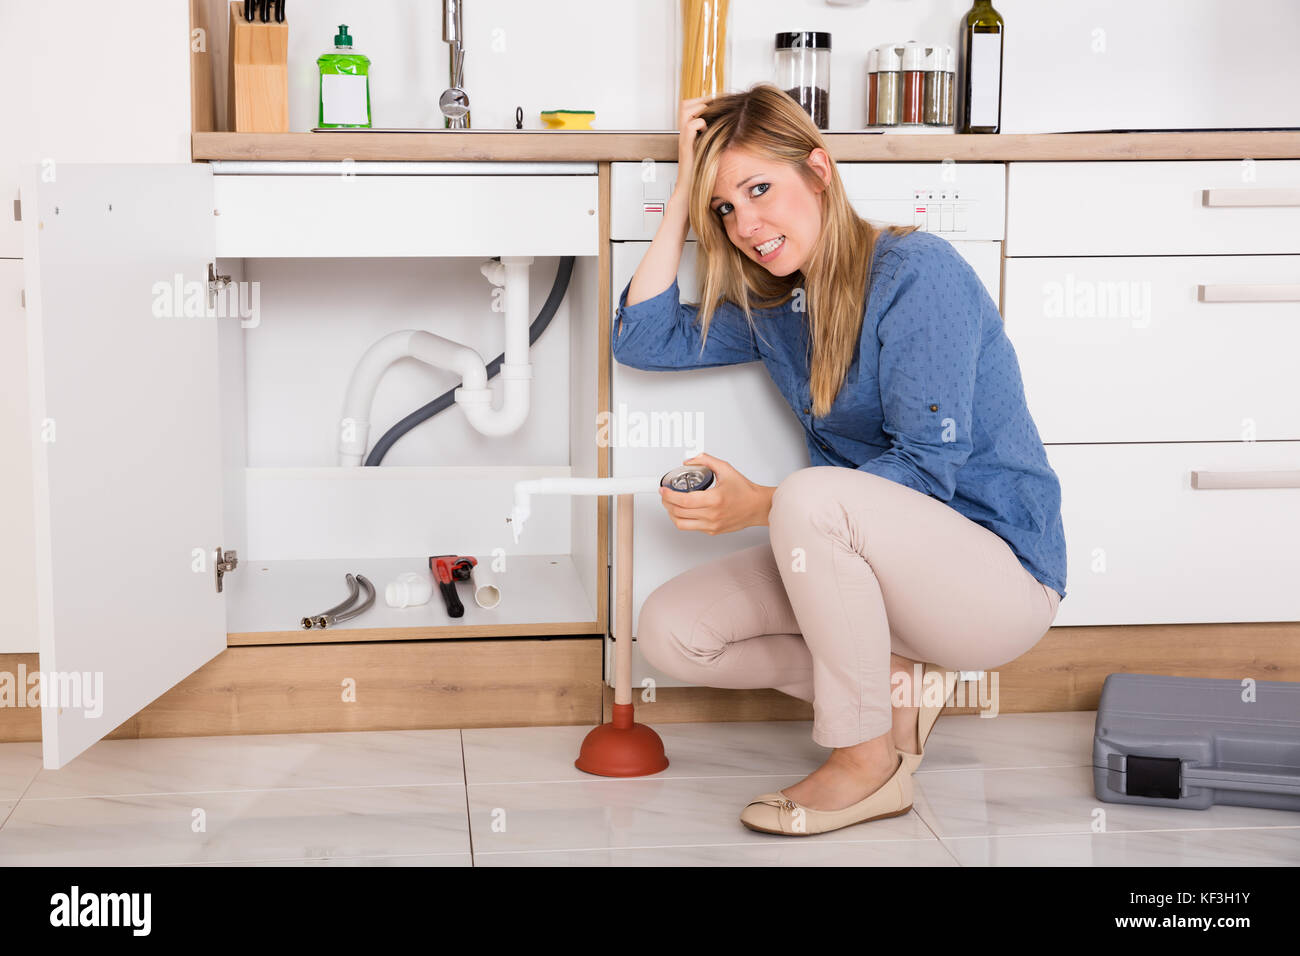 How To Fix The Kitchen Sink Clogging